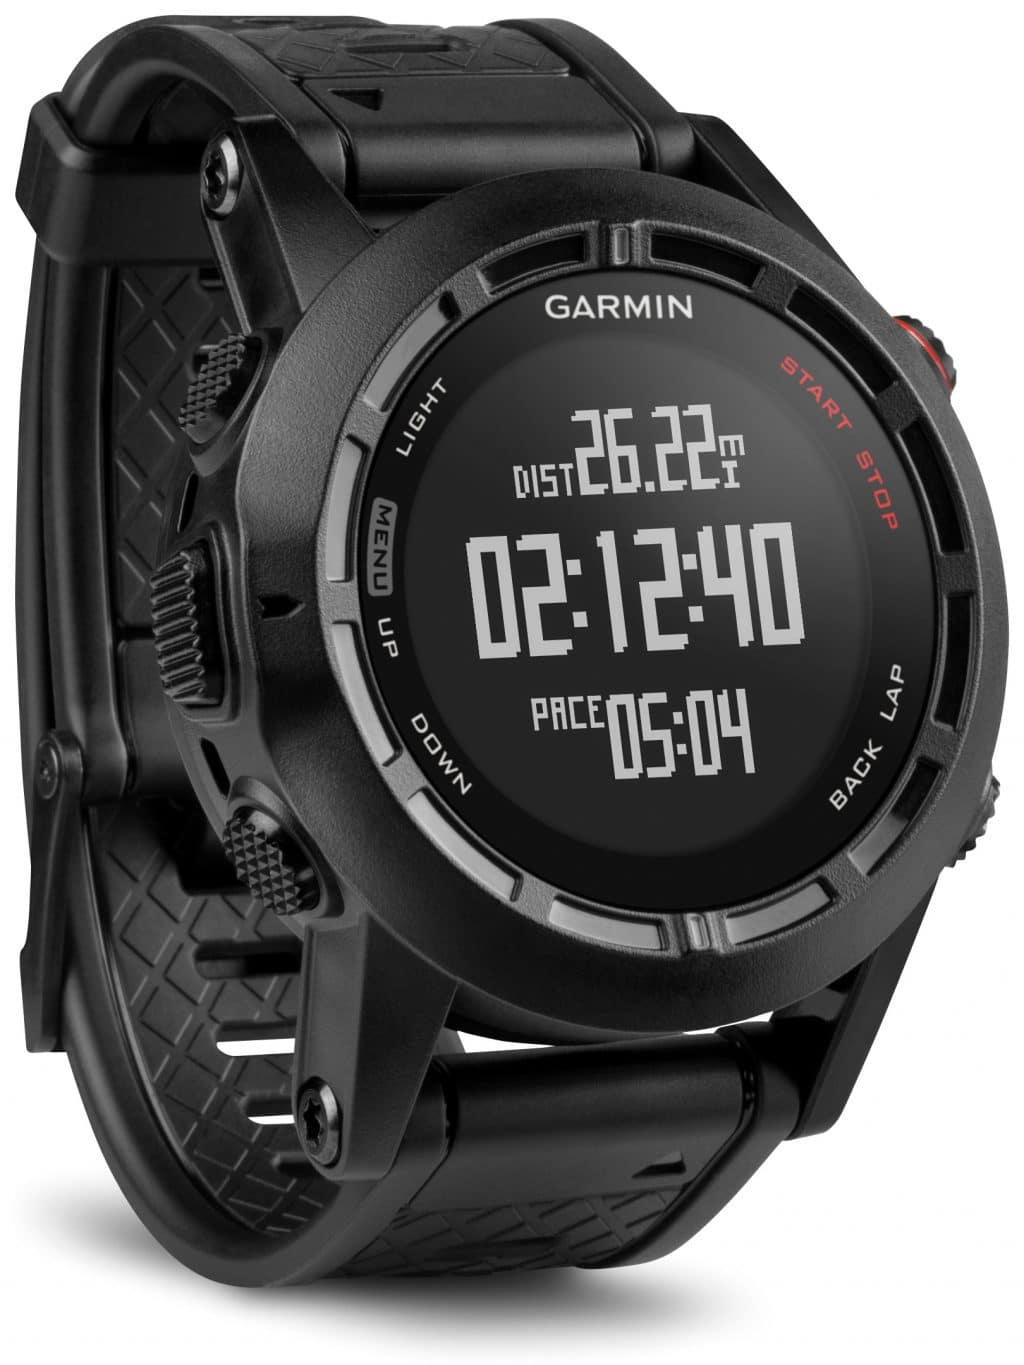 meilleure montre garmin vivoactive 3 2018 avis comparatif test. Black Bedroom Furniture Sets. Home Design Ideas